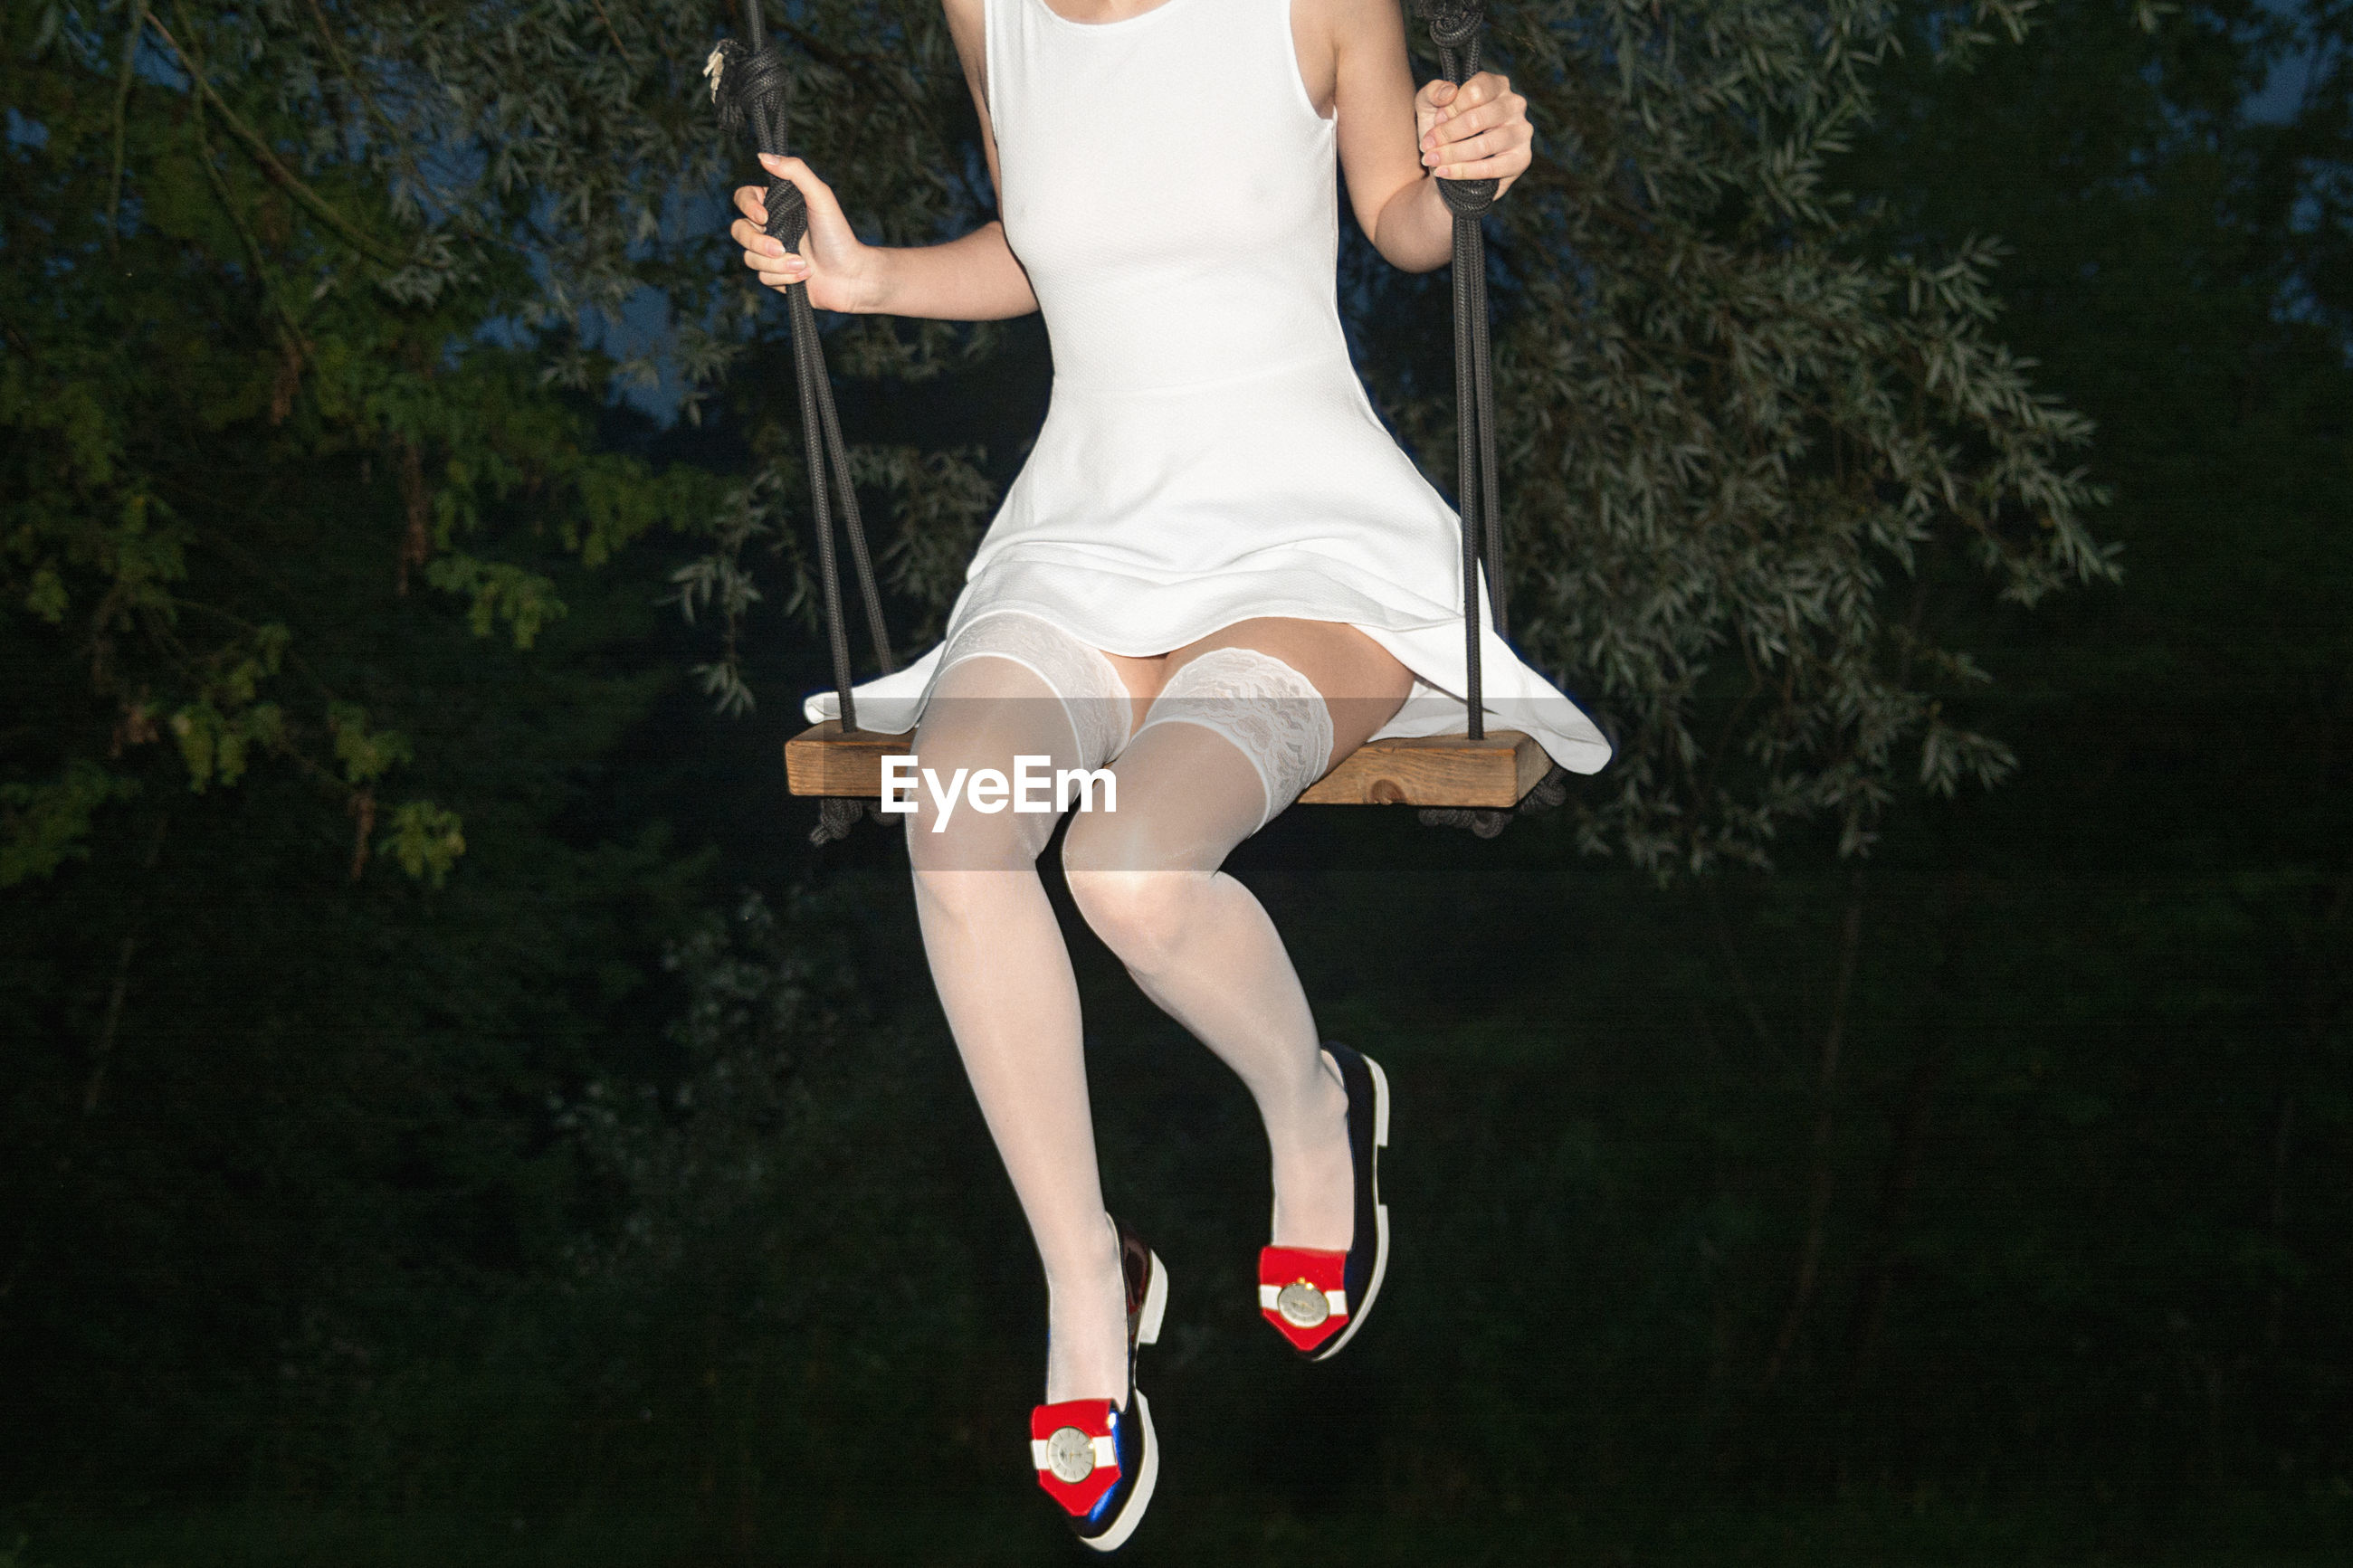 Low section of woman swinging against trees at night